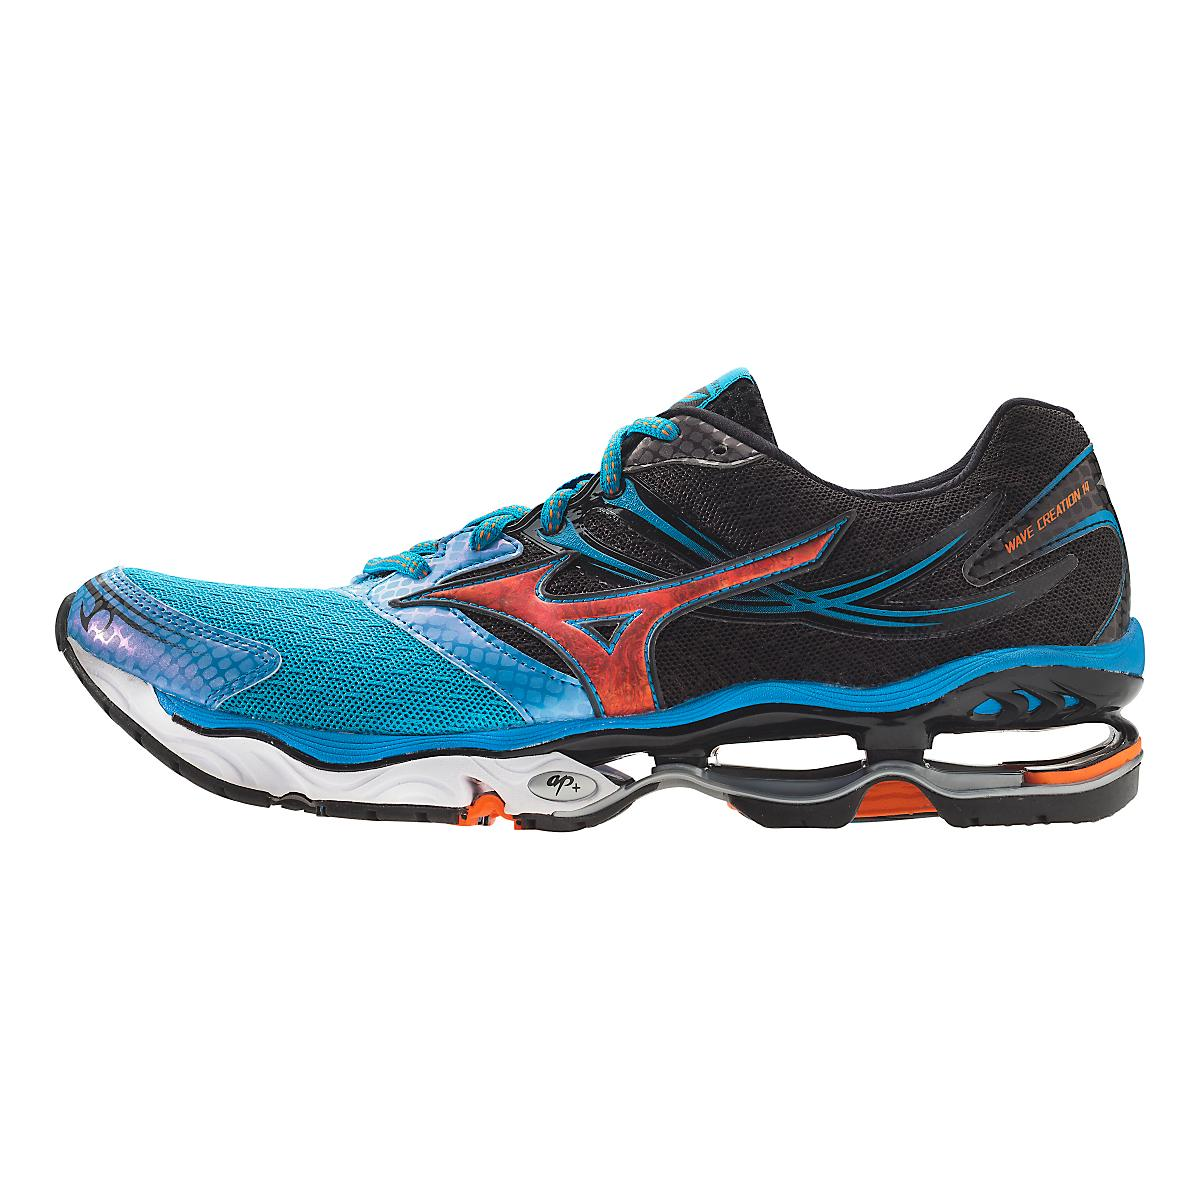 huge selection of ad1d4 fac77 Mens Mizuno Wave Creation 14 Running Shoe at Road Runner Sports